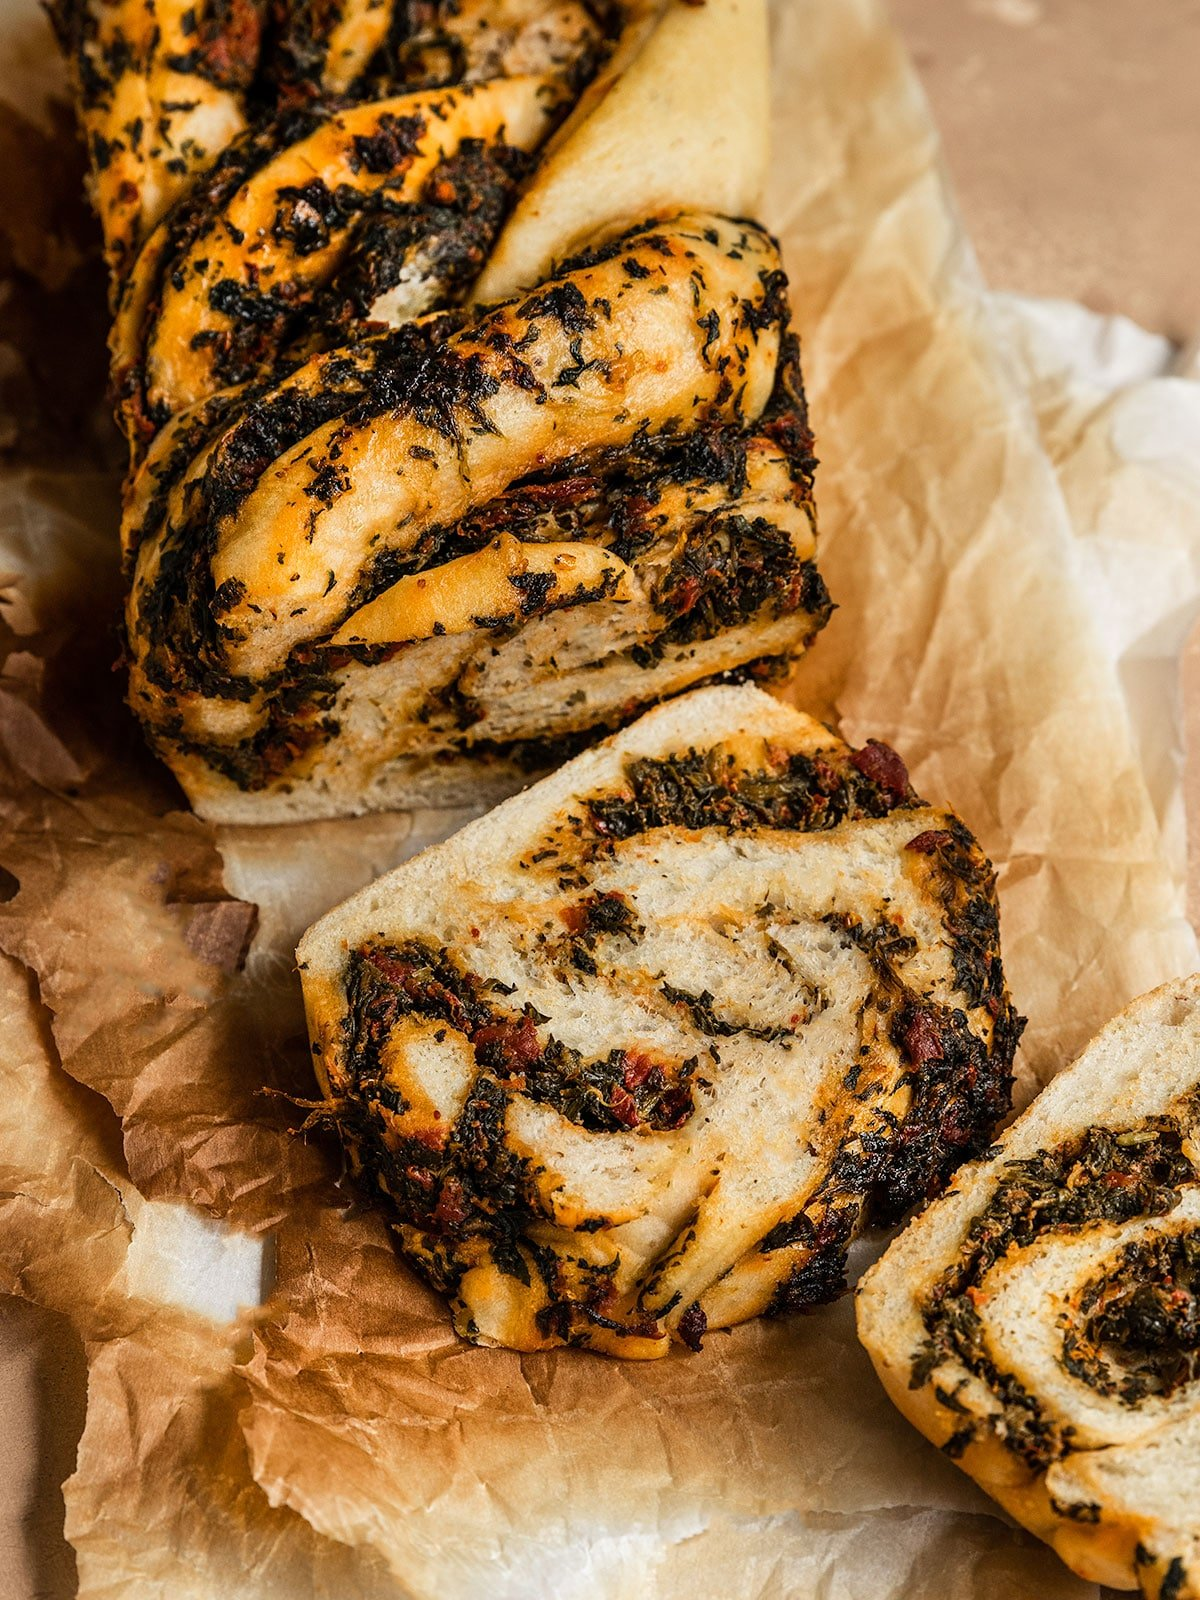 sliced babka with swirls of tomato spinach filling on a sheet of parchment paper